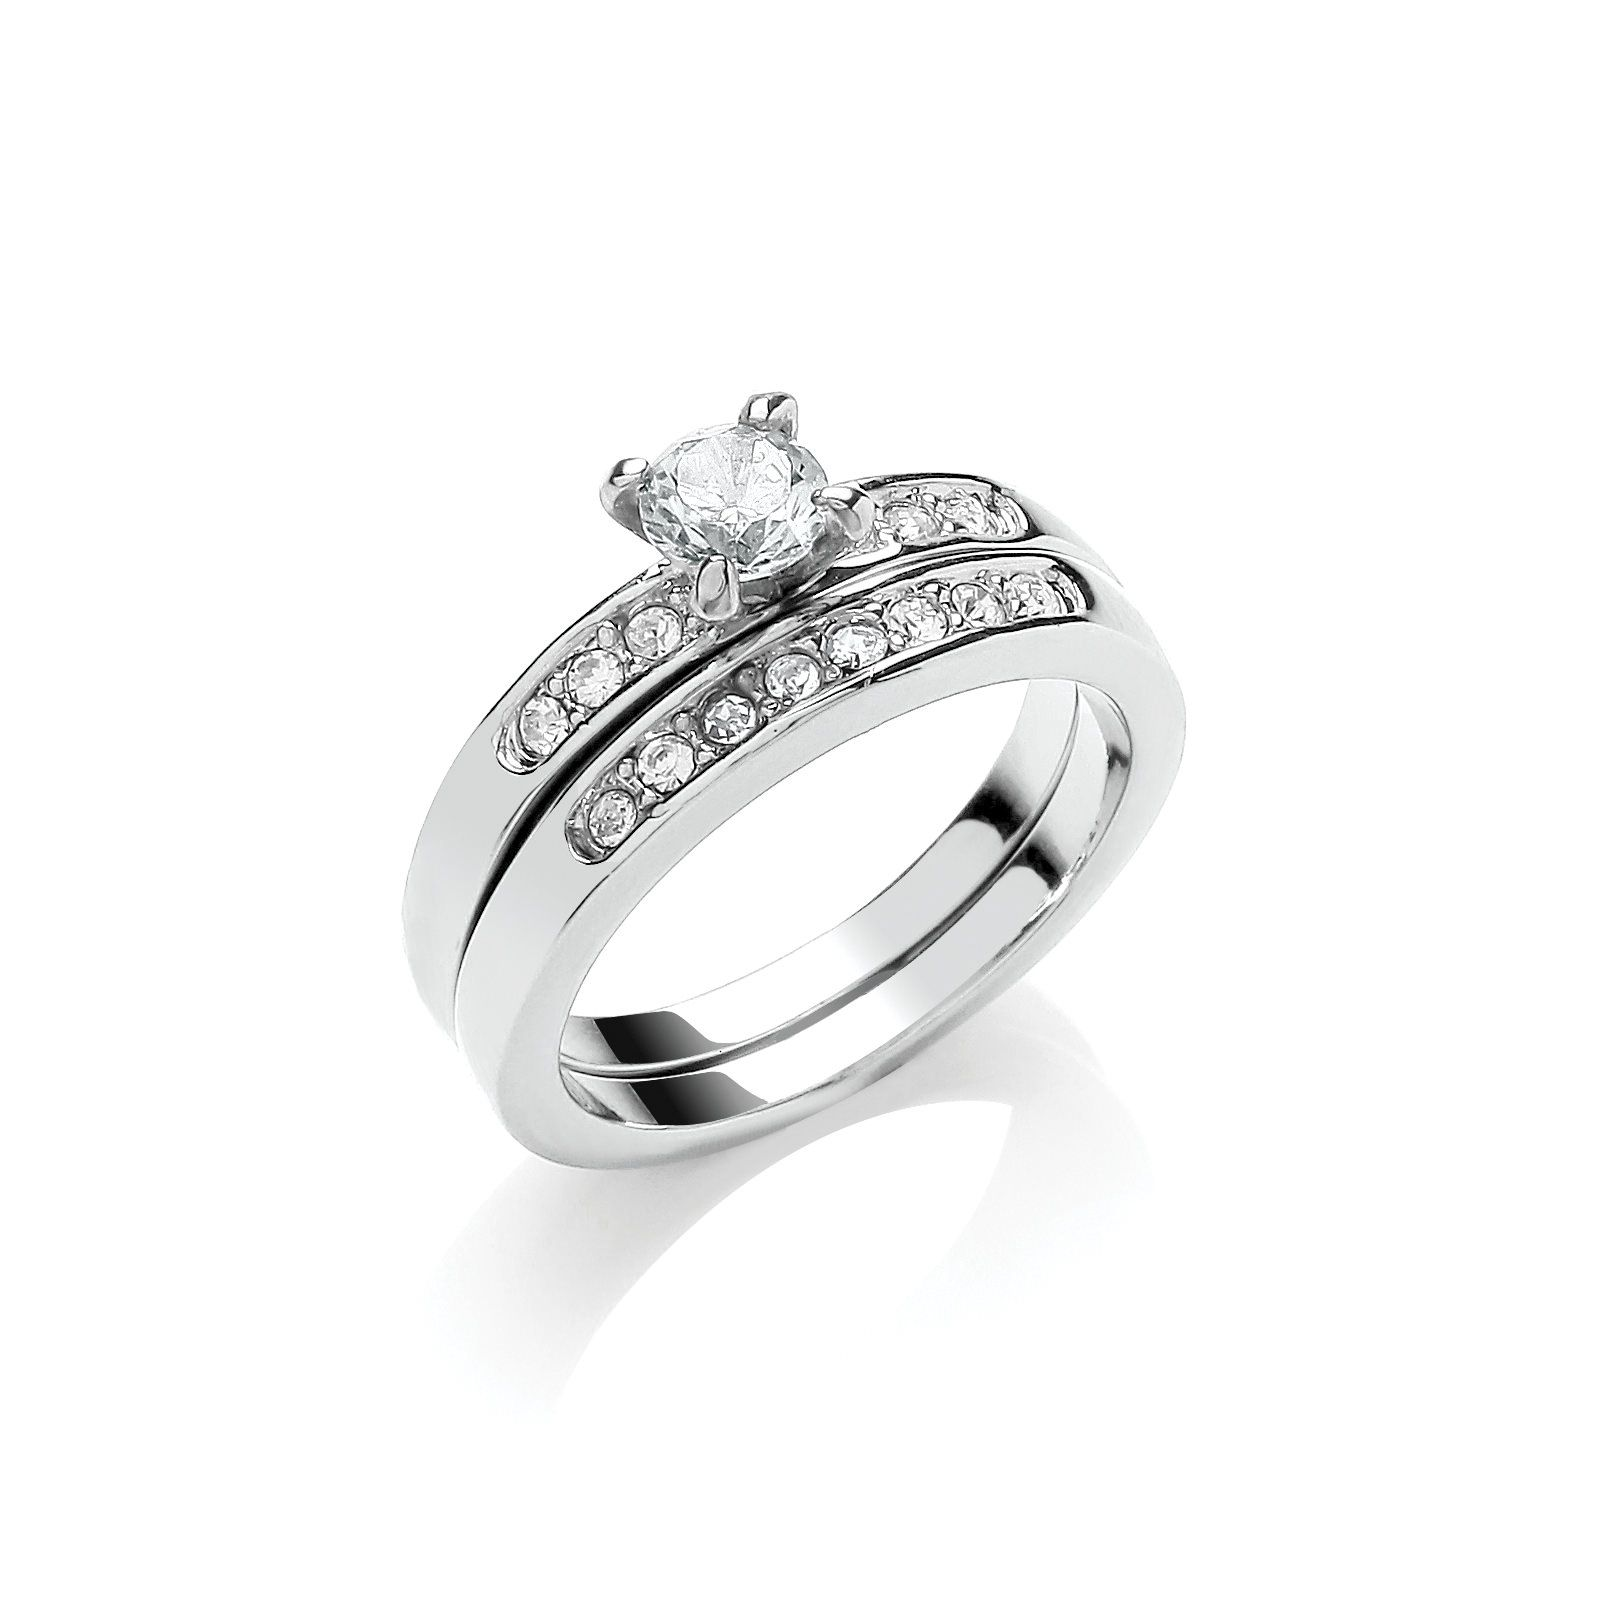 Buckley London Rhodium Plated Solitaire Wedding Band Duo